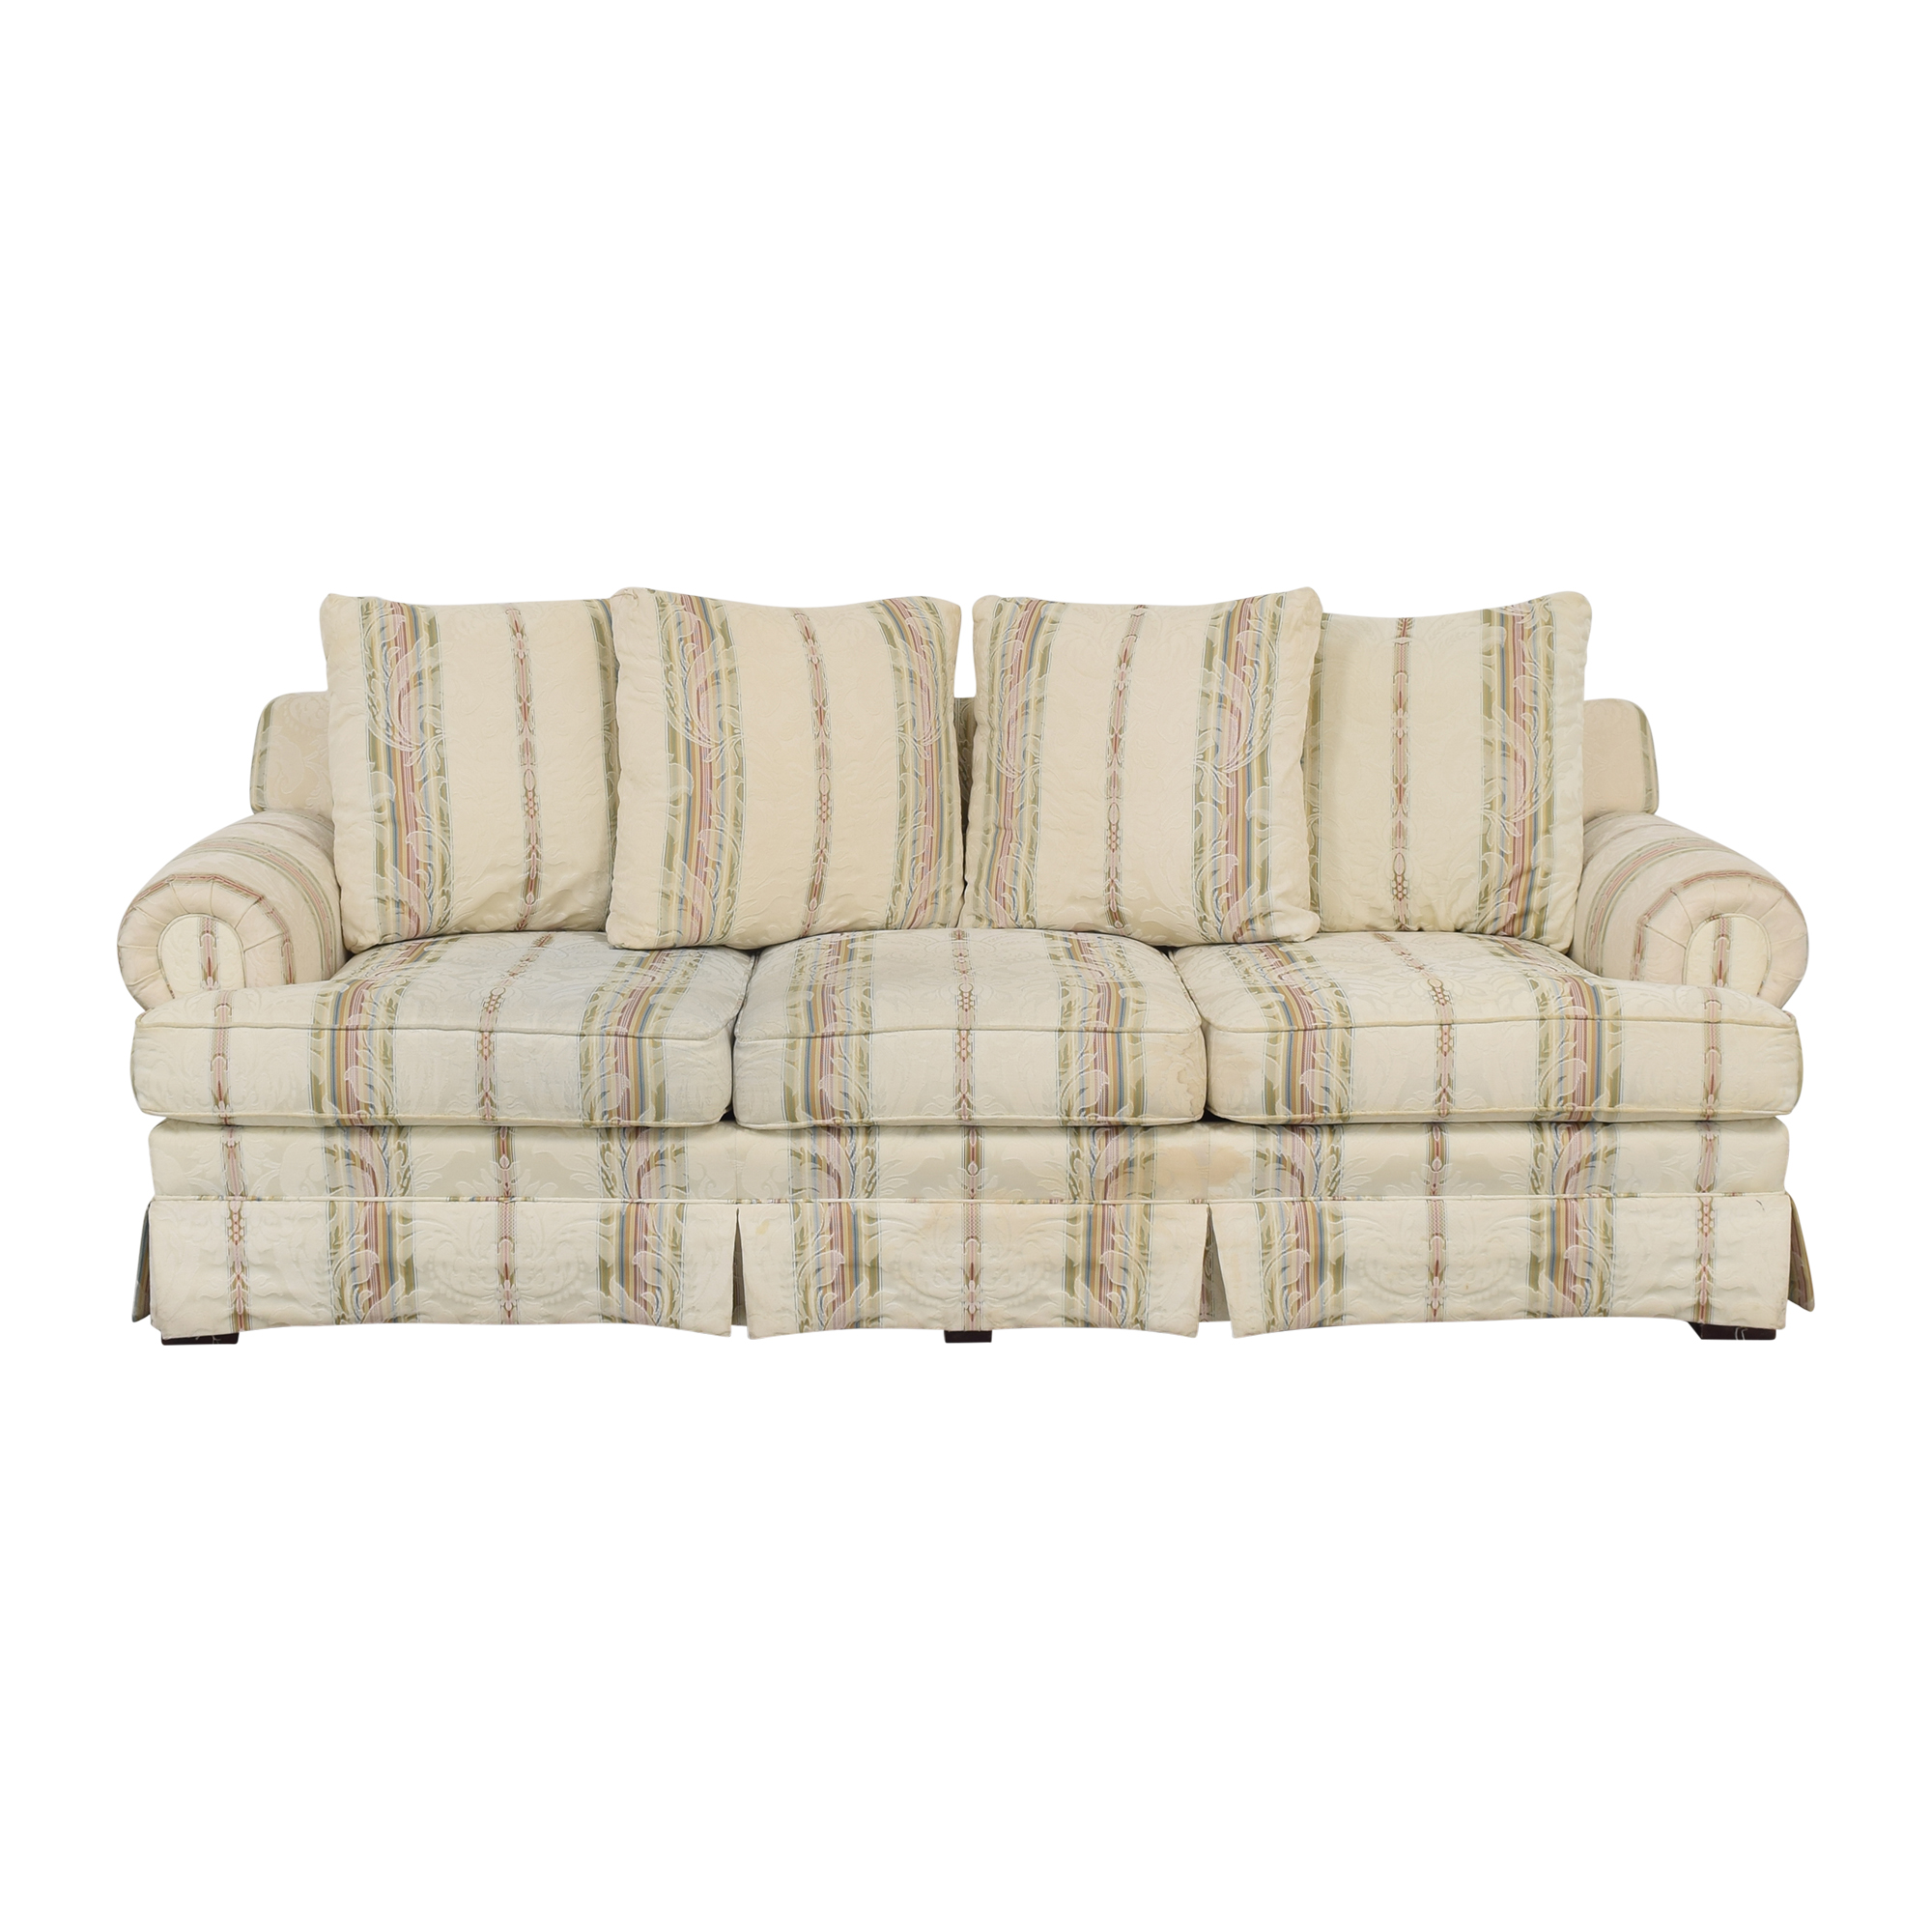 Broyhill Furniture Broyhill Furniture Layered Pillow Sofa ma